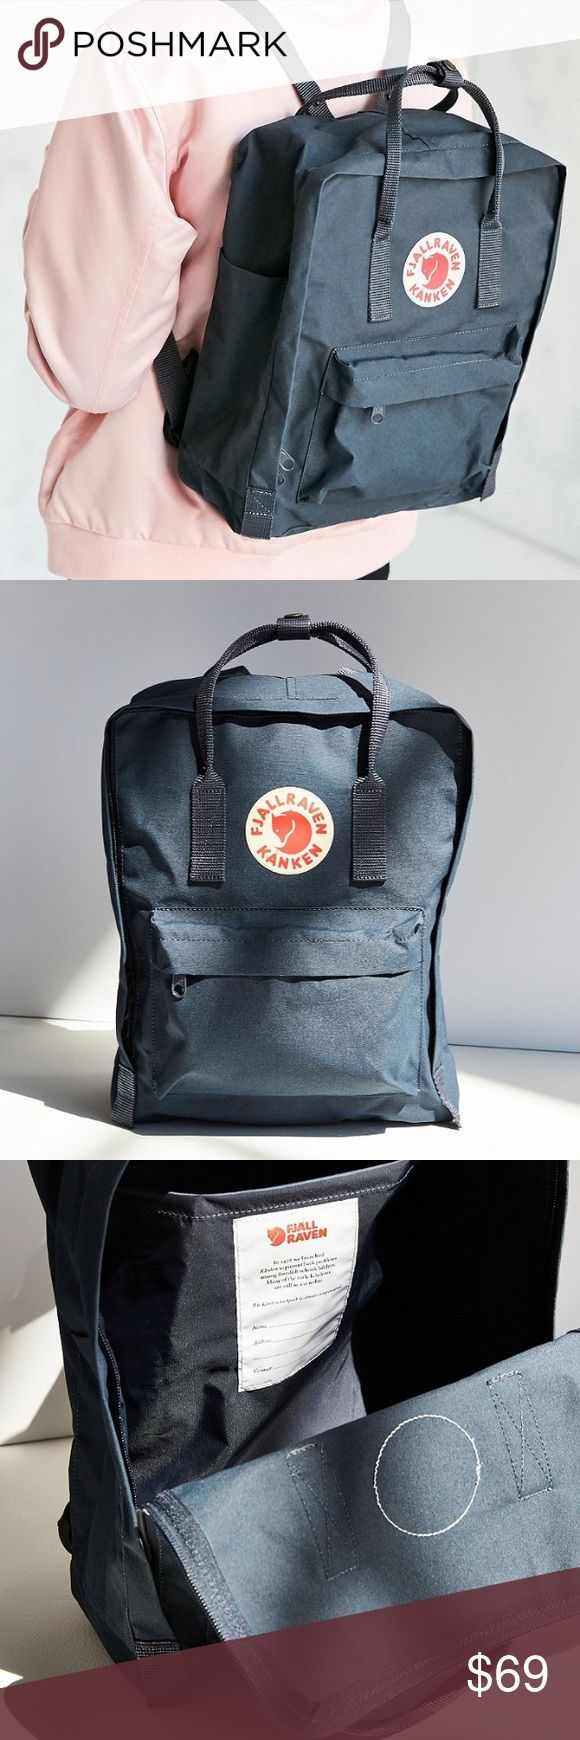 "NEW Authentic Fjallraven Kanken Backpack NAVY 13"" NEW Authentic Fjallraven Kanken Backpack / NAVY / Length 13"" Width 4.5"" Height 11"" Handle Drop 4"" / Polyvinyl / Purchased from Urban Outfitters Fjallraven Bags Backpacks"